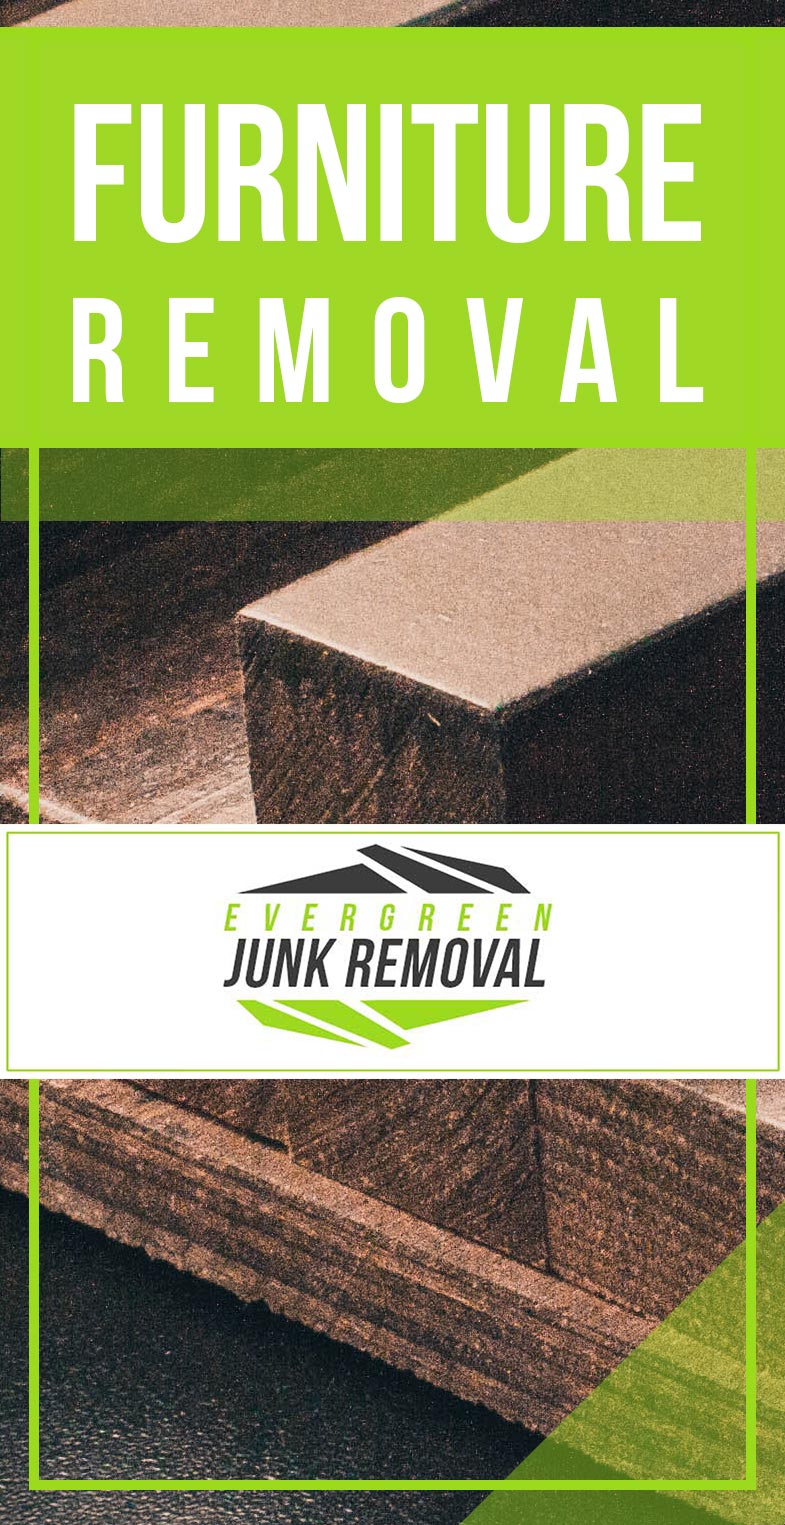 Junk Removal Palm Springs Furniture Removal